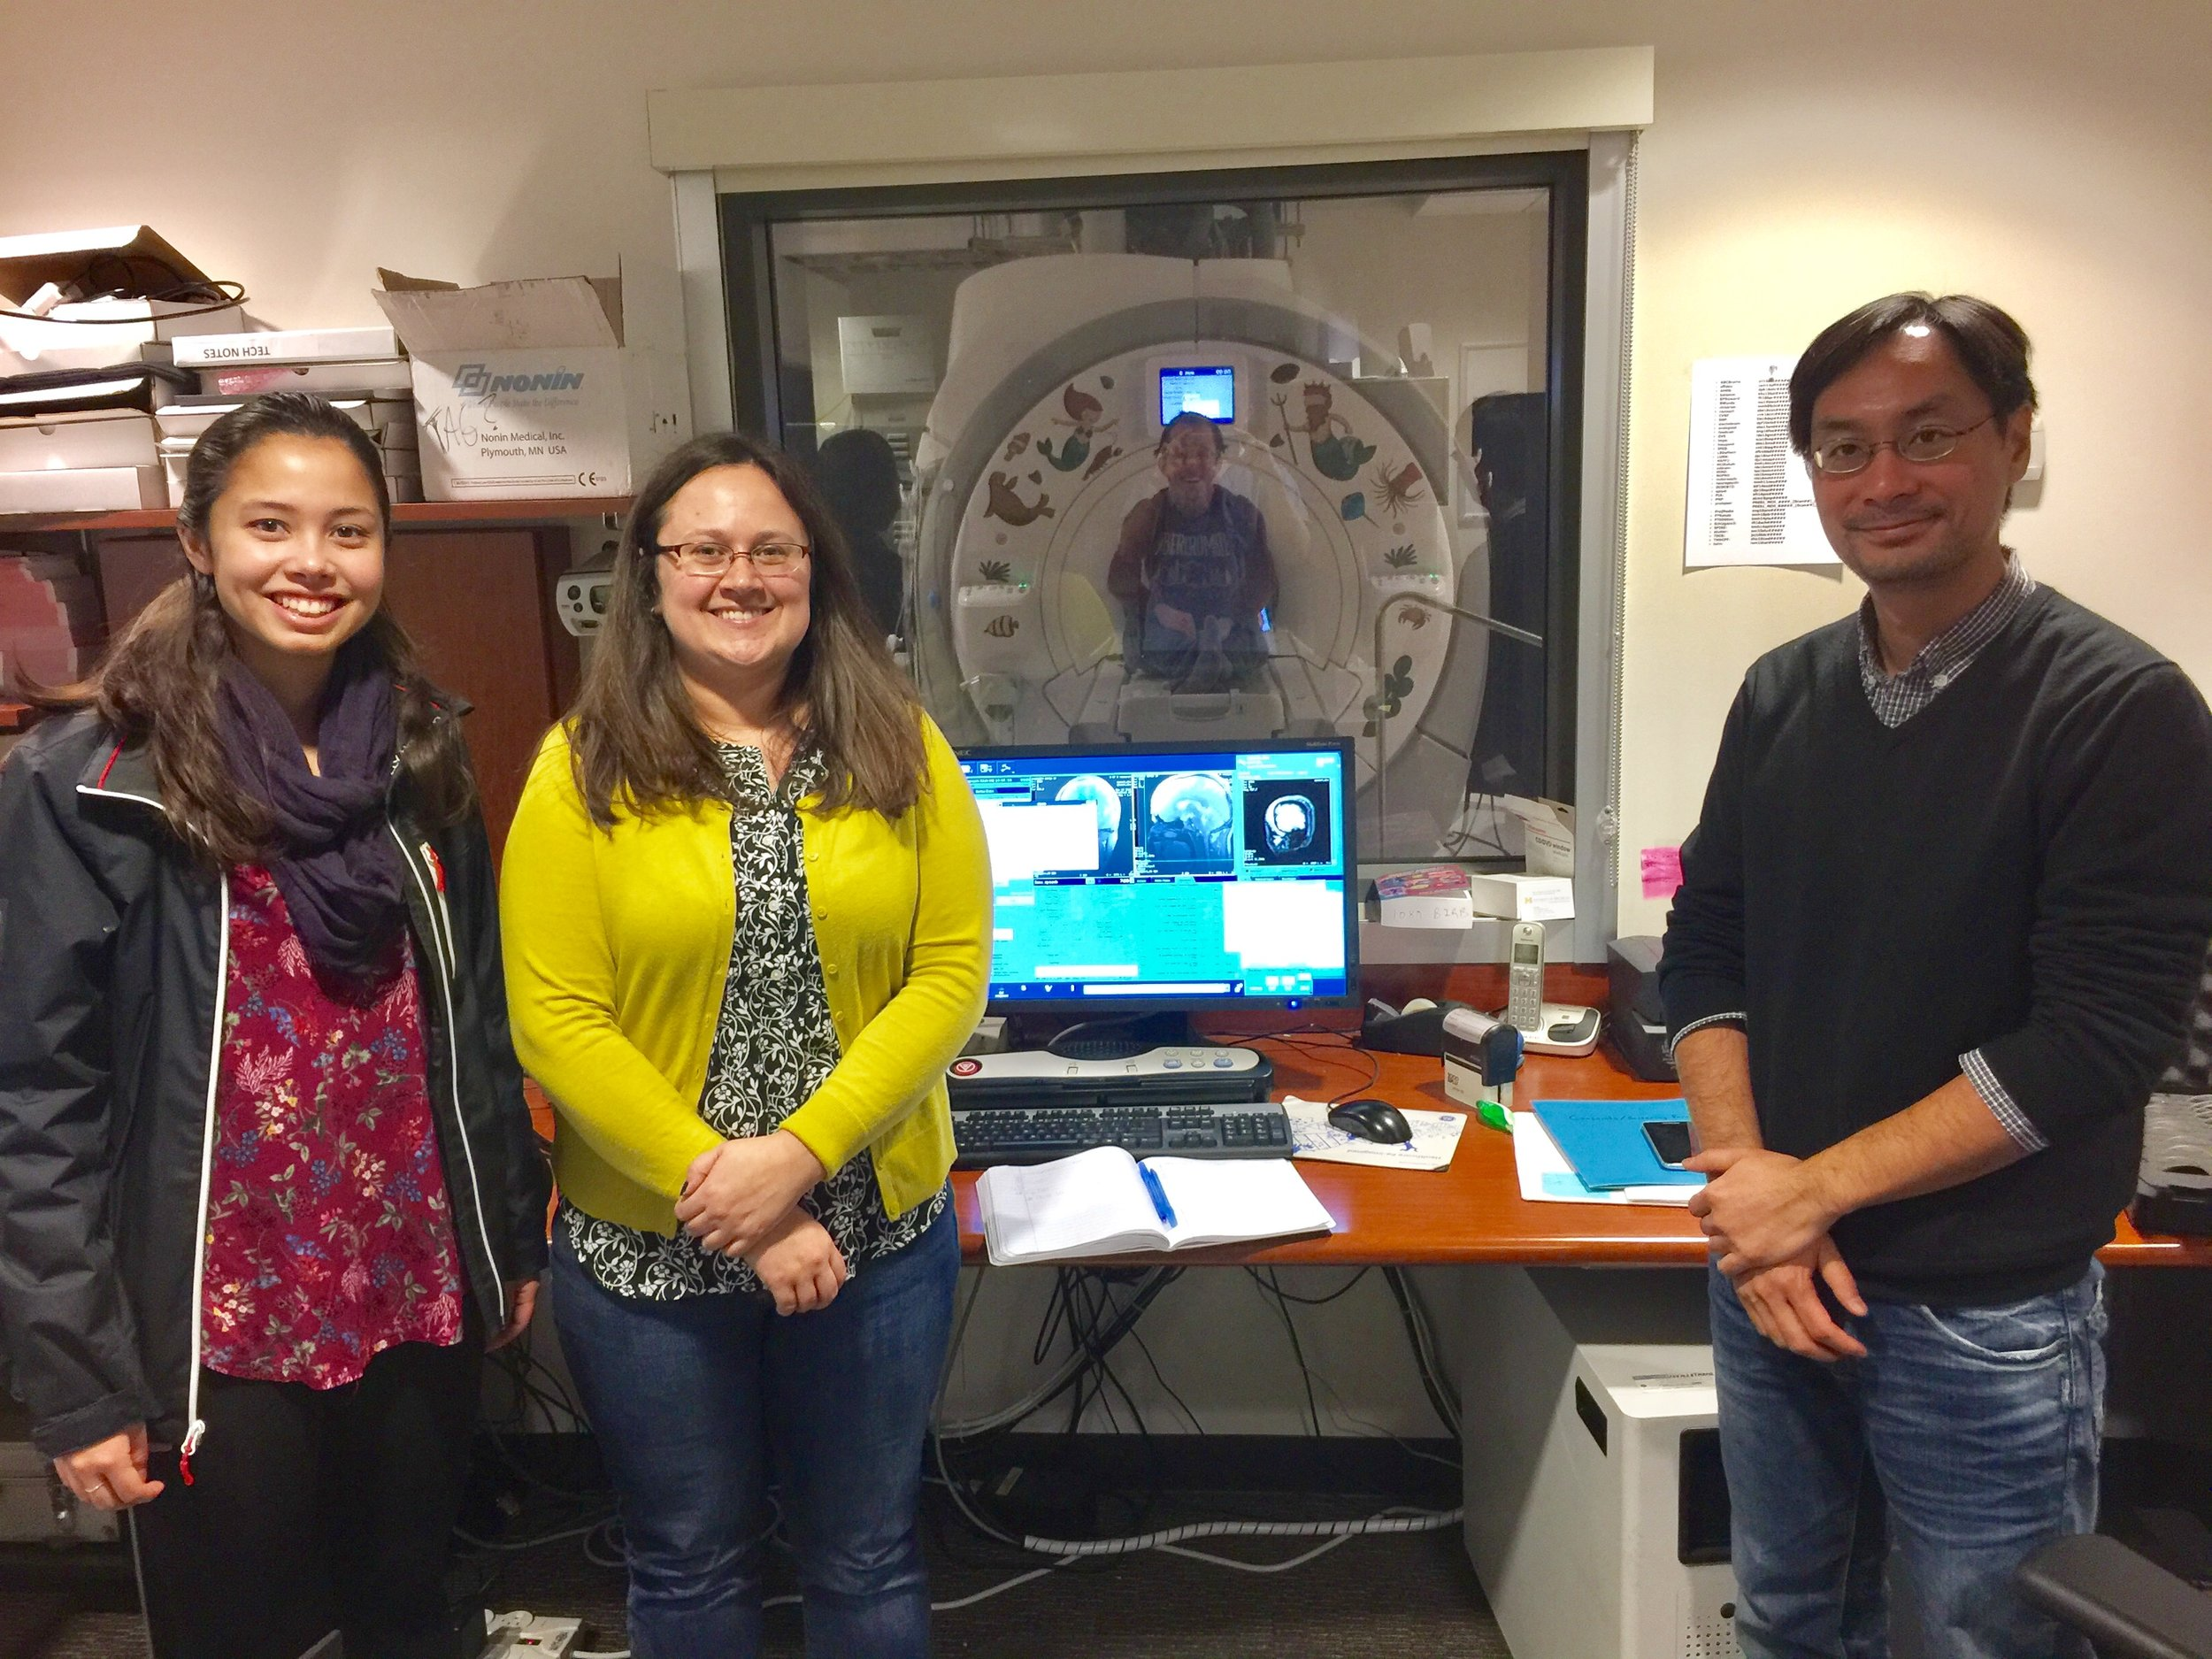 UM lab members Cece, Emily, Andrew, and Ho Ming piloting a new fMRI study. December 2016